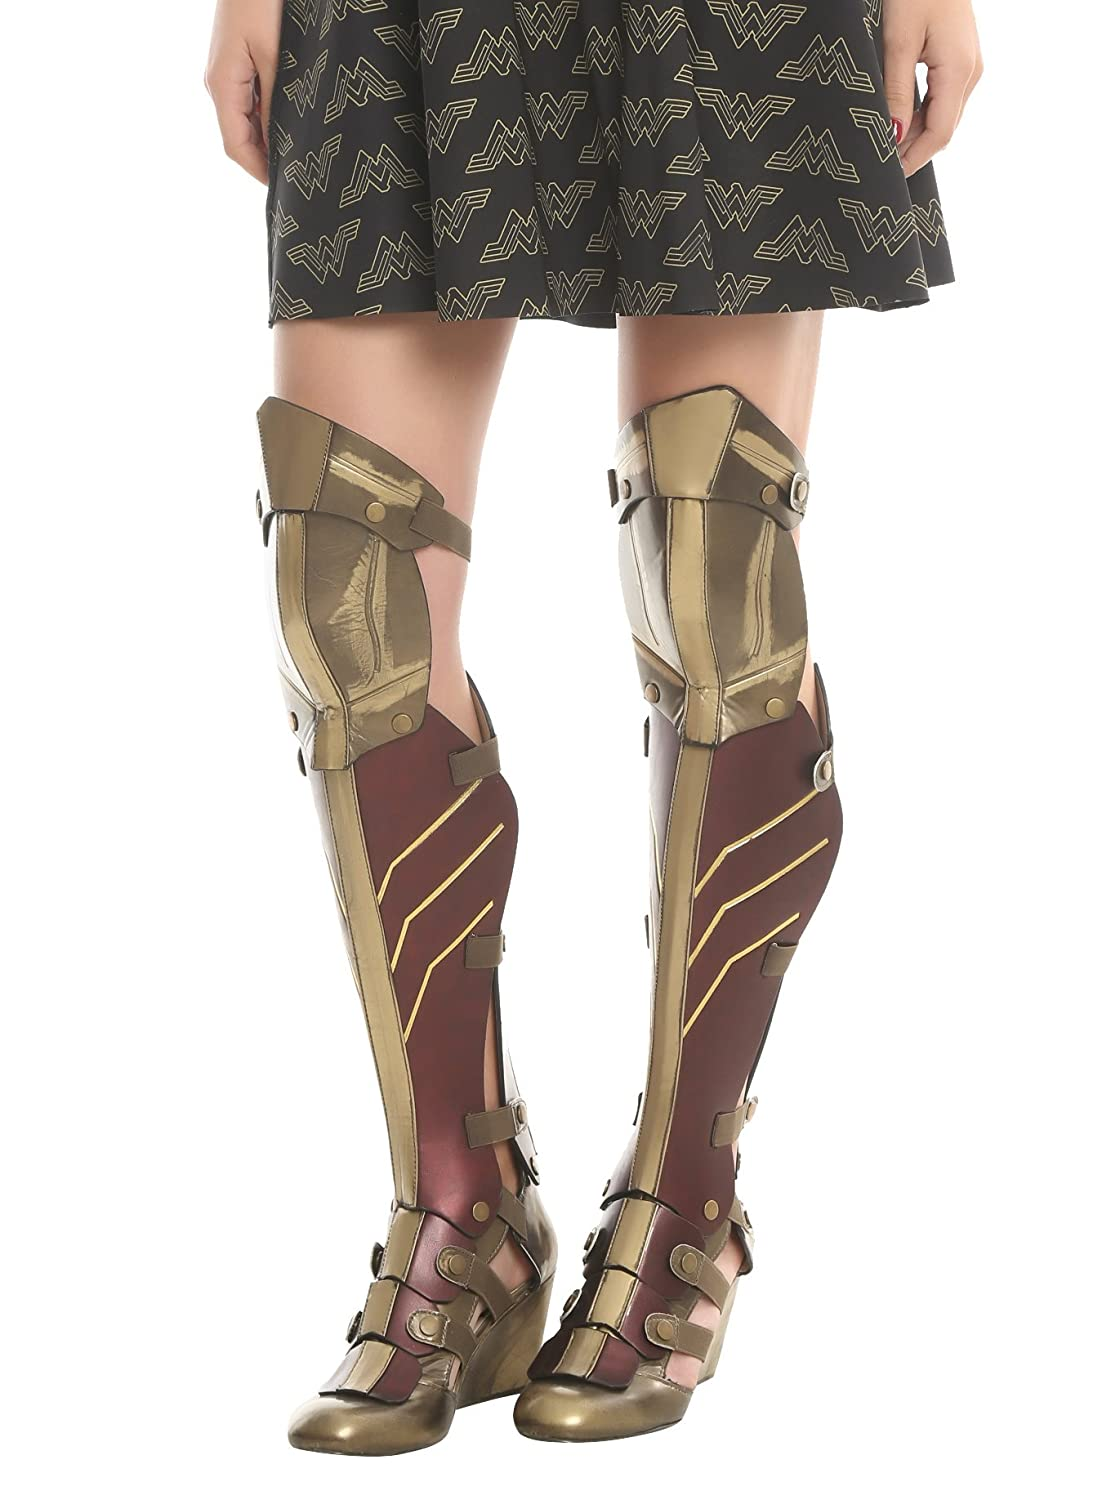 Wonder Woman Justice League 3-Piece Cosplay Wedge Boots